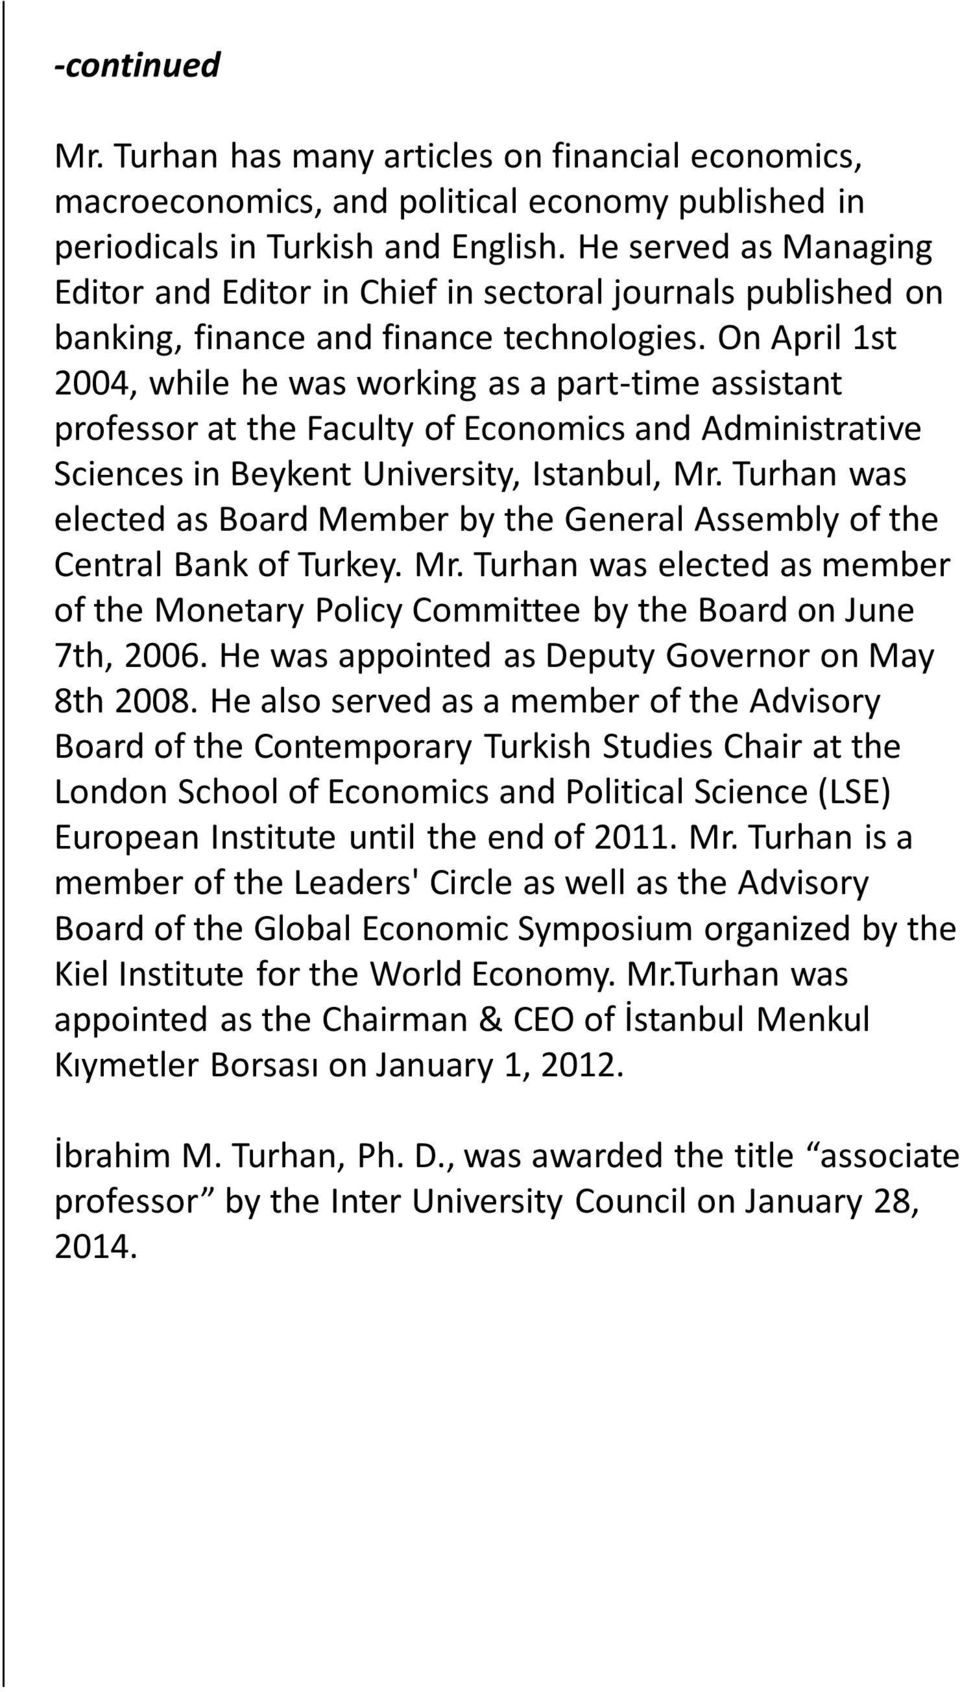 On April 1st 2004, while he was working as a part-time assistant professor at the Faculty of Economics and Administrative Sciences in Beykent University, Istanbul, Mr.